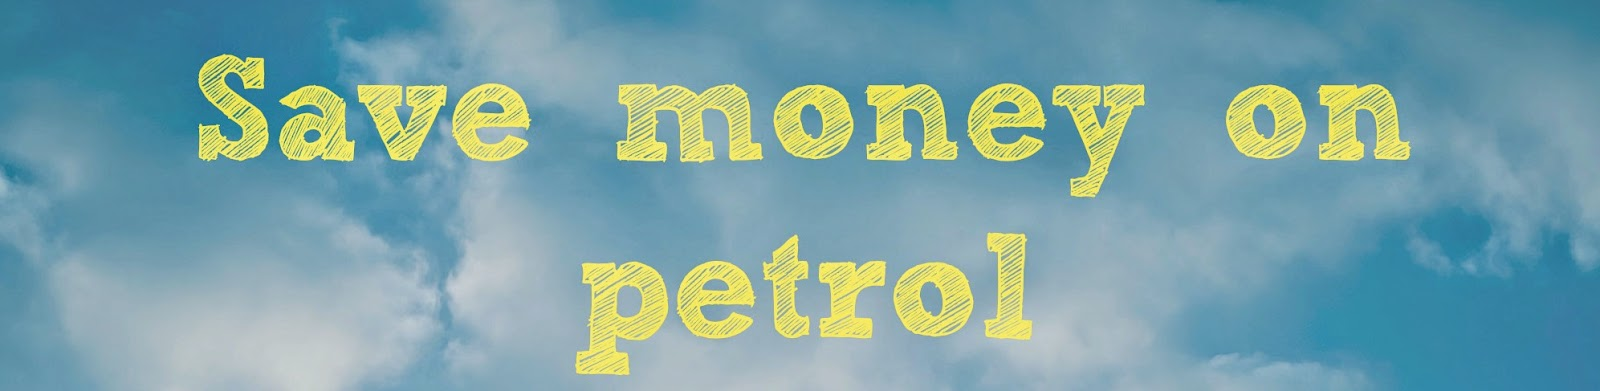 save money on petrol